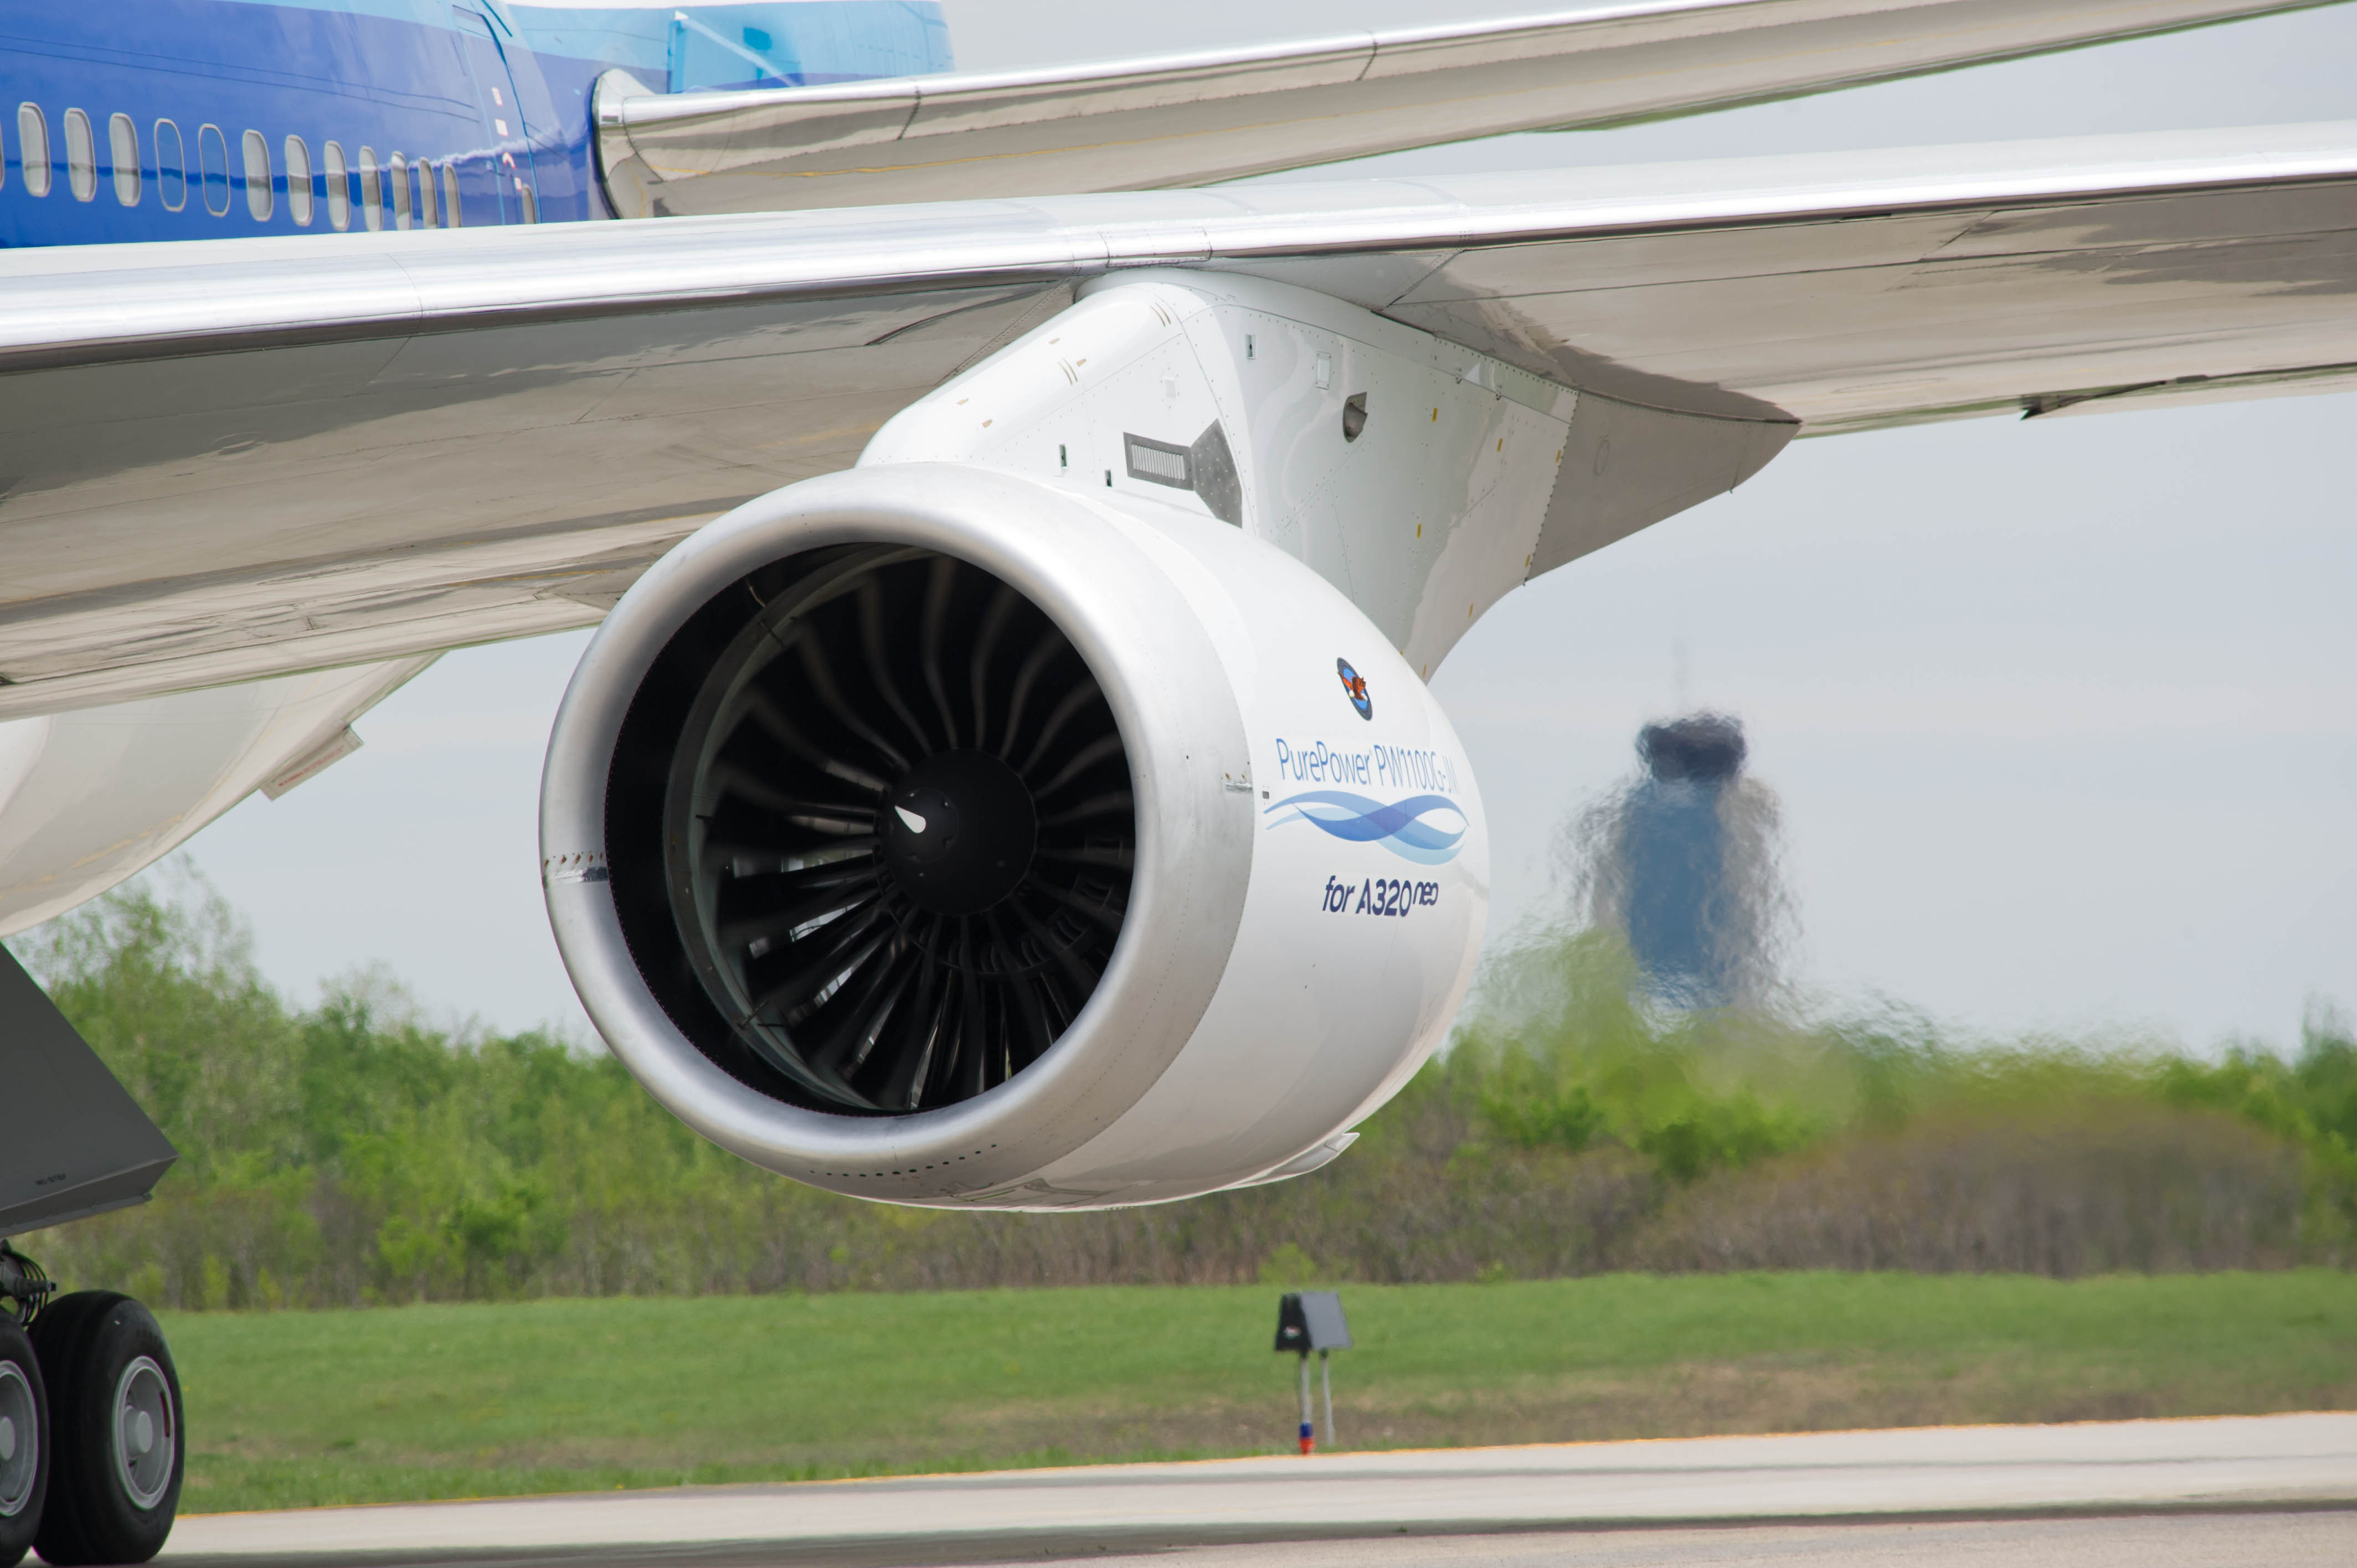 Alcoa announced a 10-year, $1.1 billion agreement with Pratt & Whitney, a division of United Technologies Corp., for state-of-the-art jet engine components including the forging for the first ever aluminum fan blade for Pratt & Whitney's PurePower(R) engines, shown here. (Photo courtesy of Pratt & Whitney)